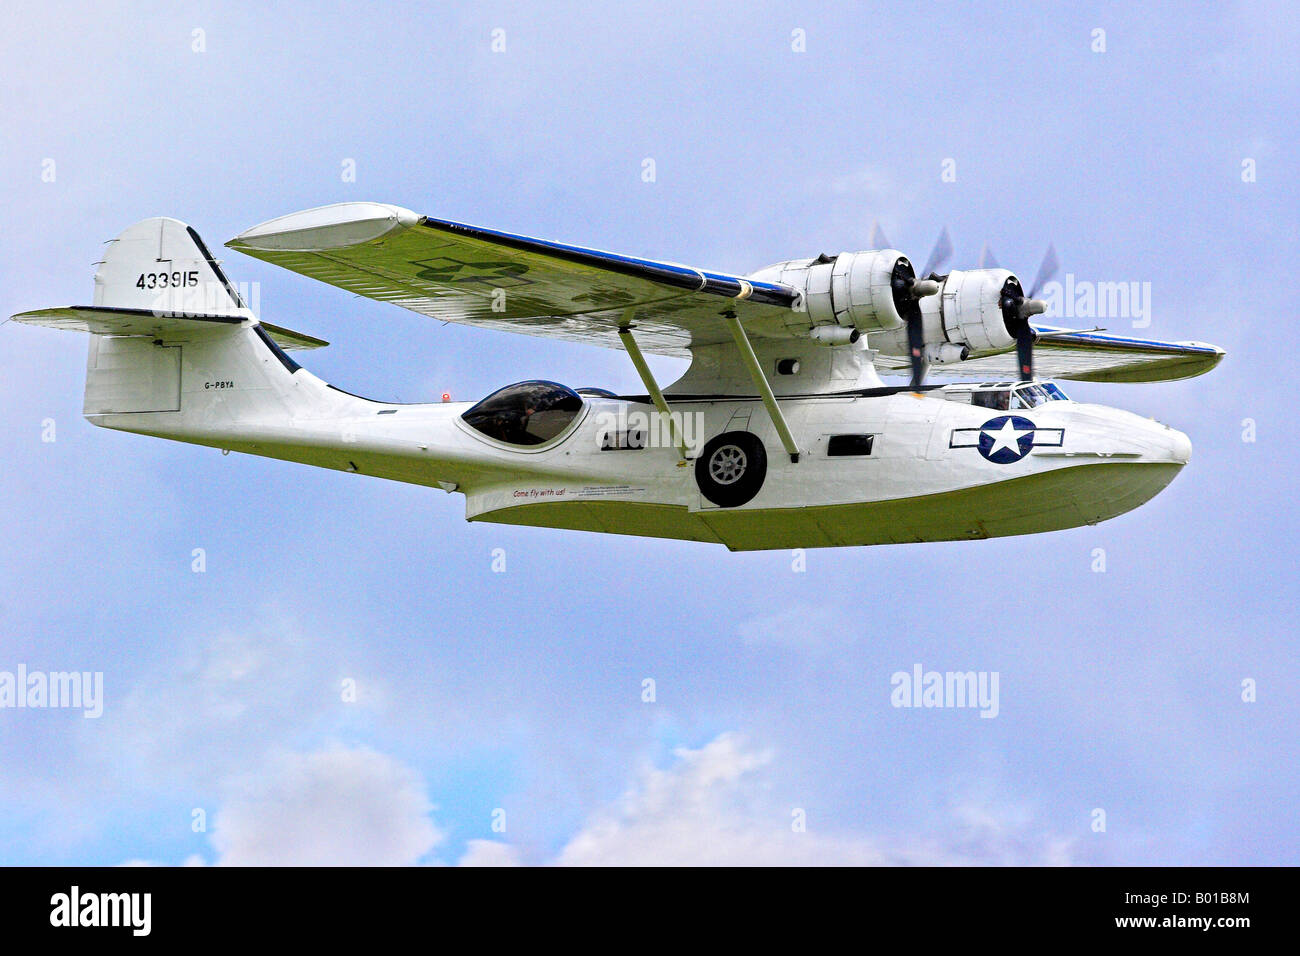 Consolidated PBY 5A Catalina Amphibian Aircraft - Stock Image